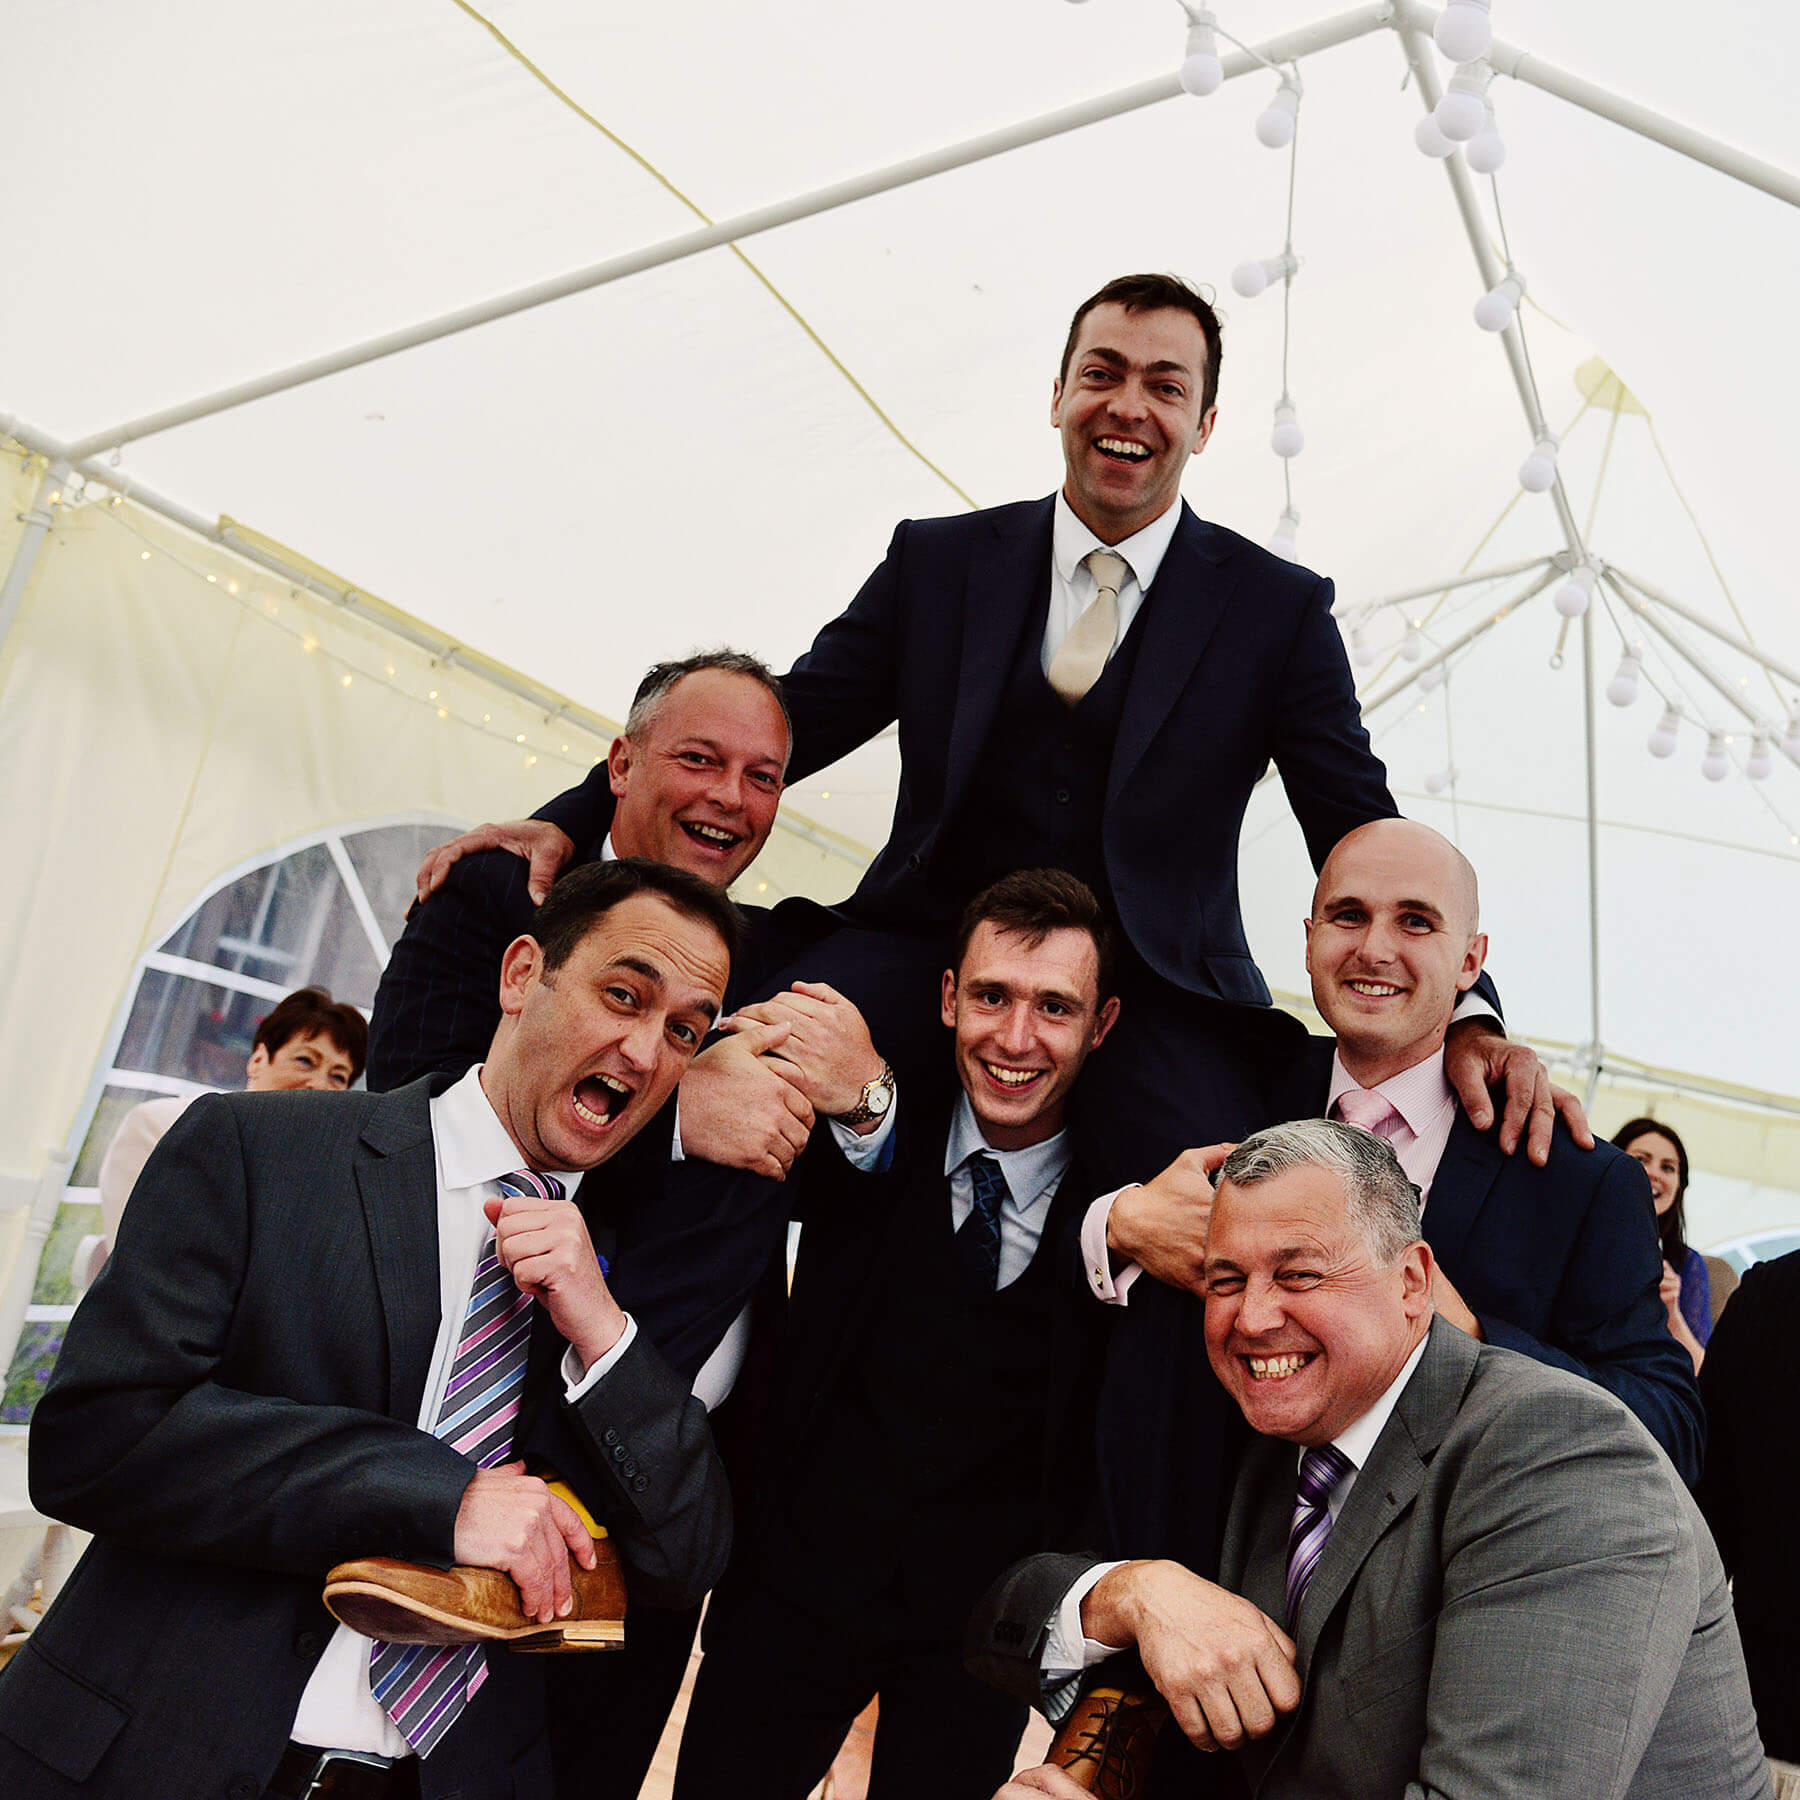 Groom on the shoulder of a friend and surrounded by friends in a marquee at the wedding reception